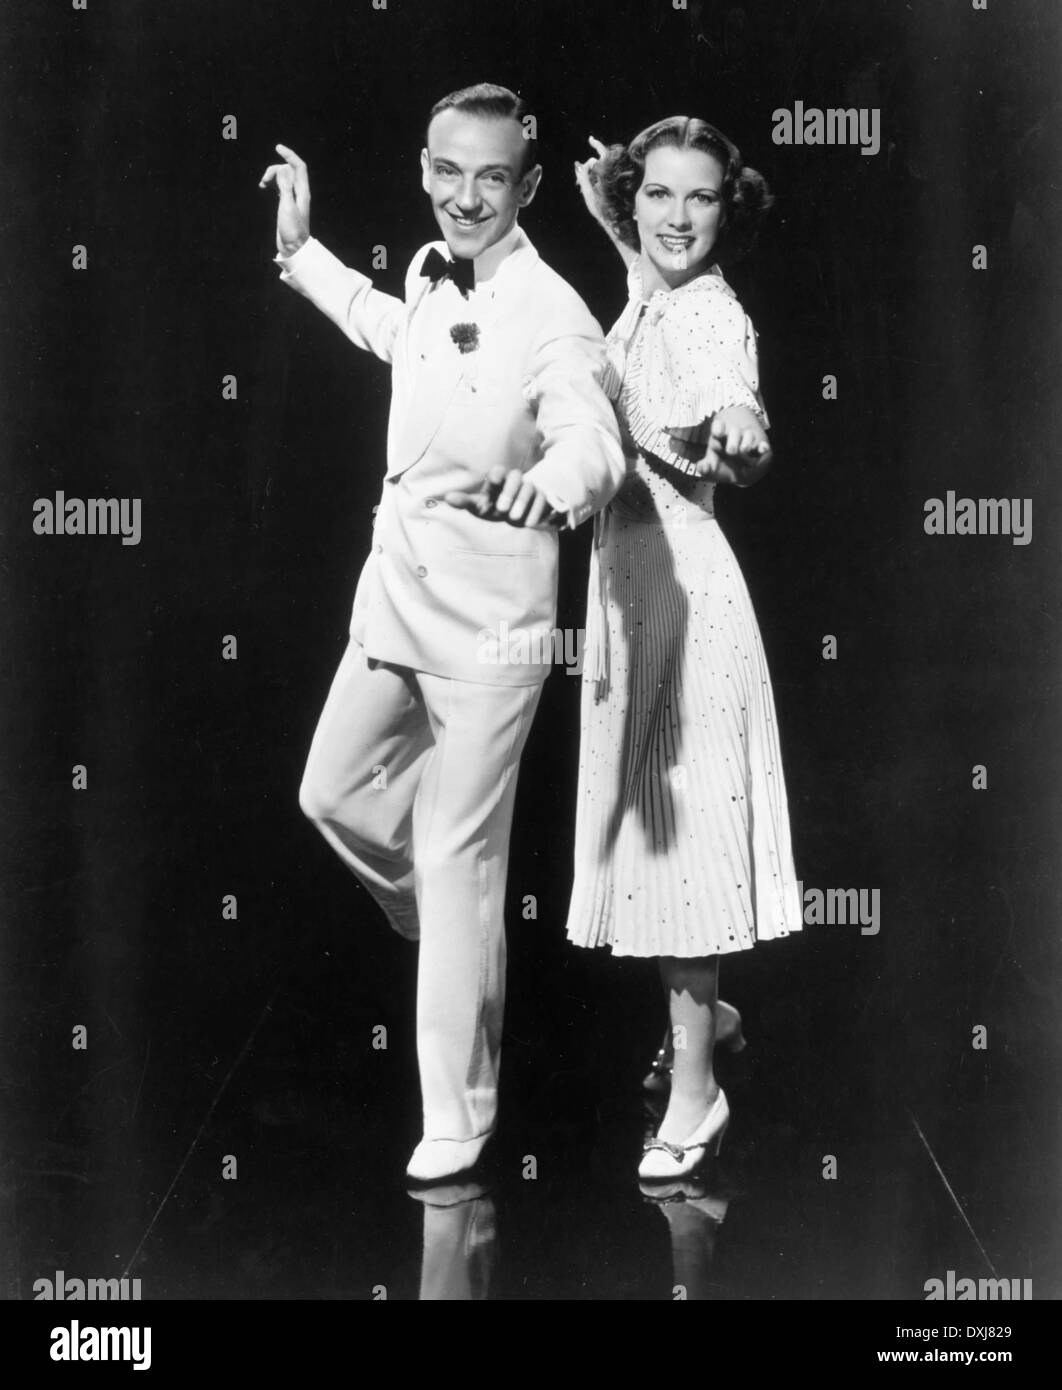 BROADWAY MELODY OF 1940 - Stock Image